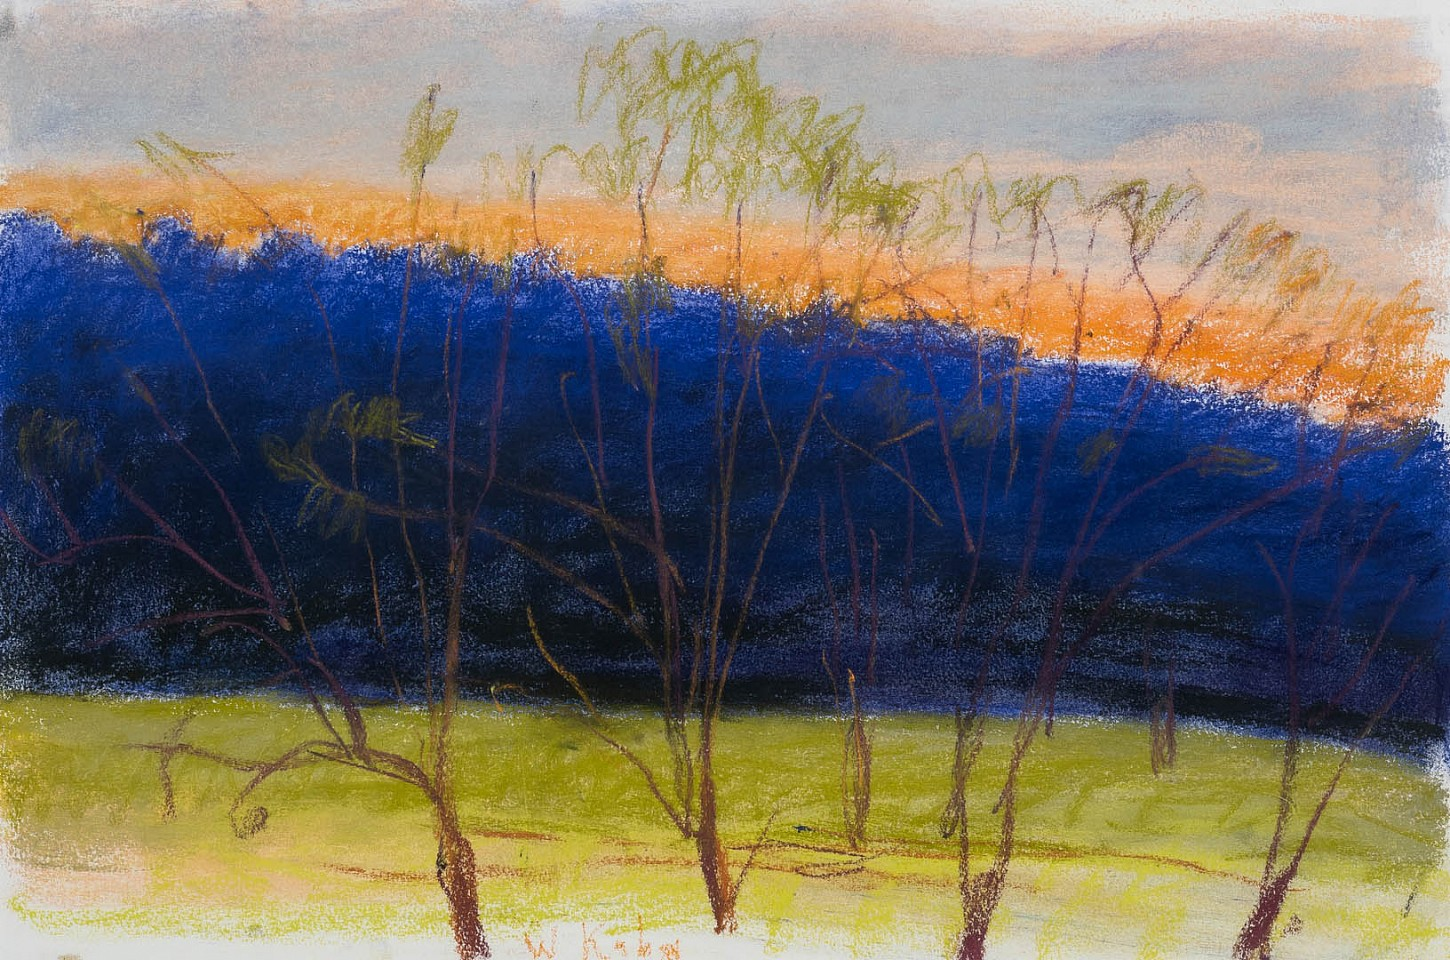 Wolf Kahn ,   Evening Breeze  ,  c. 1998     pastel on paper ,  15 x 22 in. (38.1 x 55.9 cm)     WK190201